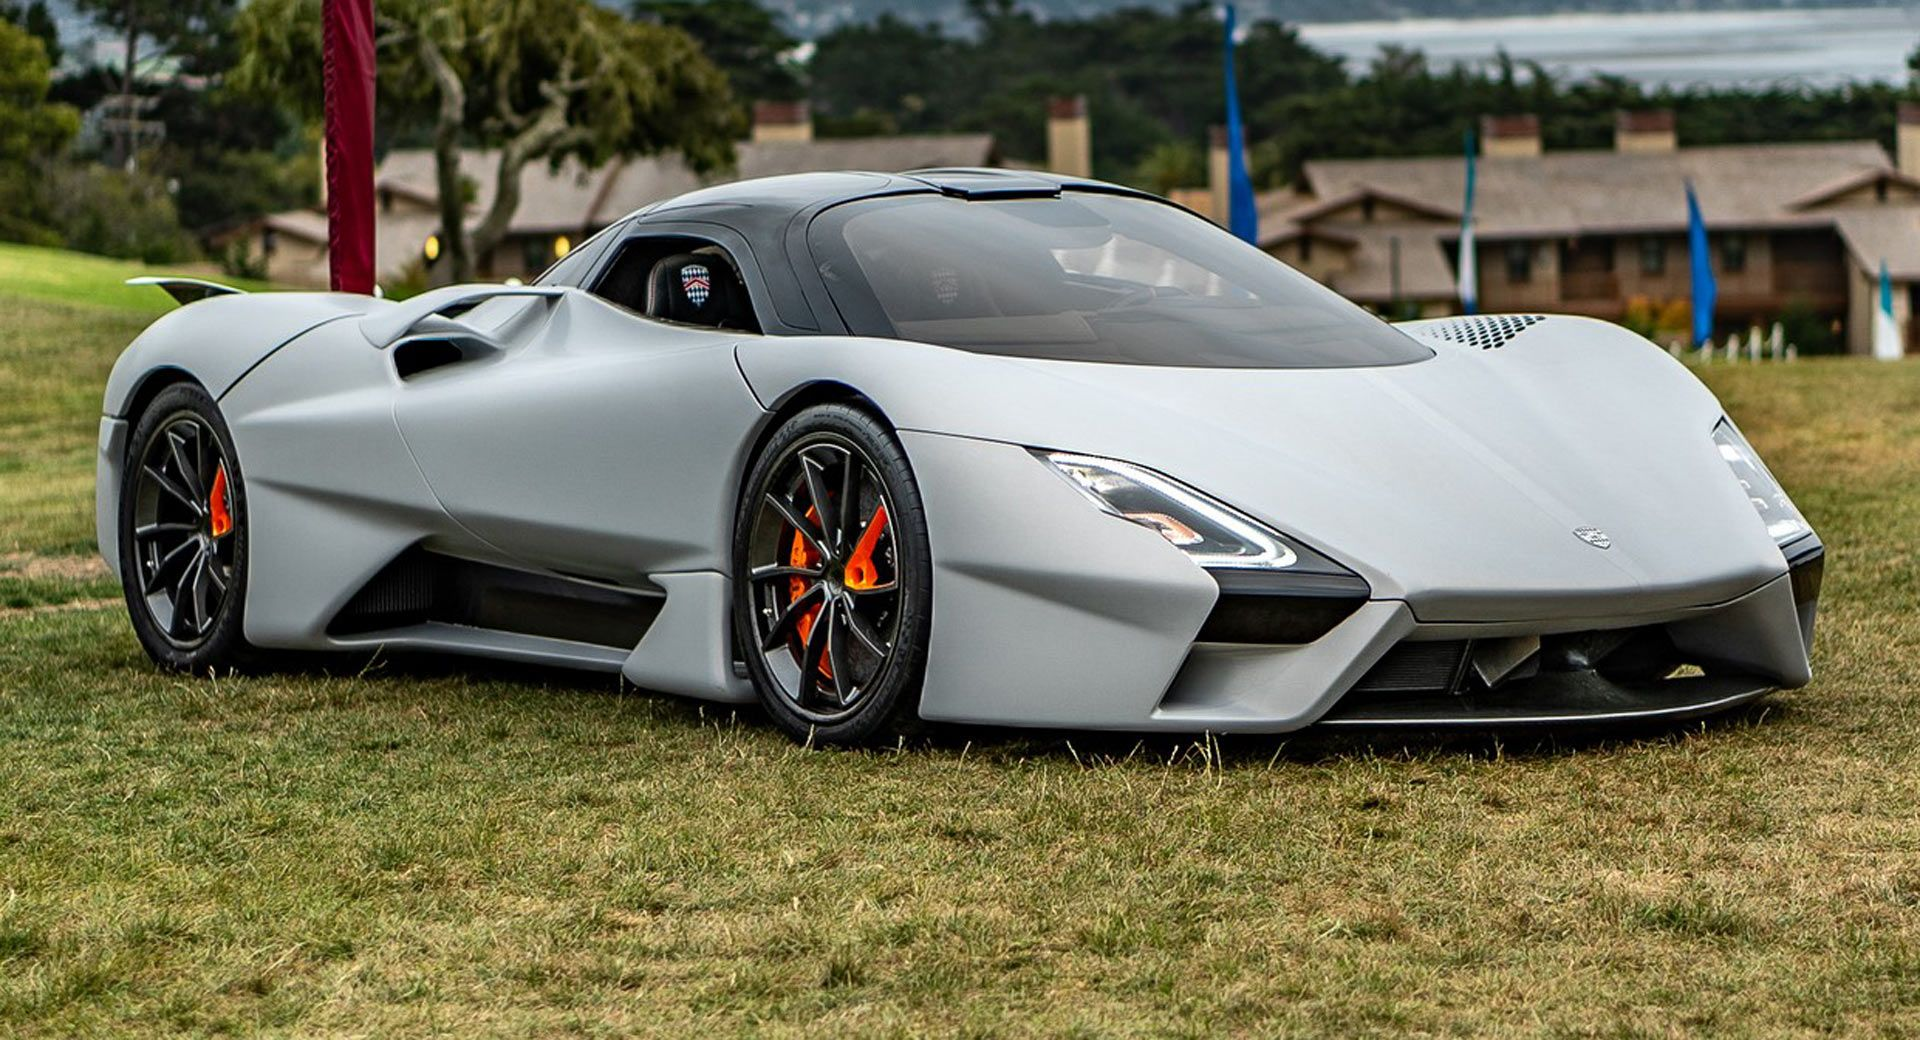 The Ssc Tuatara Has A Twin Turbo 5 9 Liter V8 With 1 750 Hp And May Hit 300 Mph In 2020 Tuatara Fast Cars Car In The World